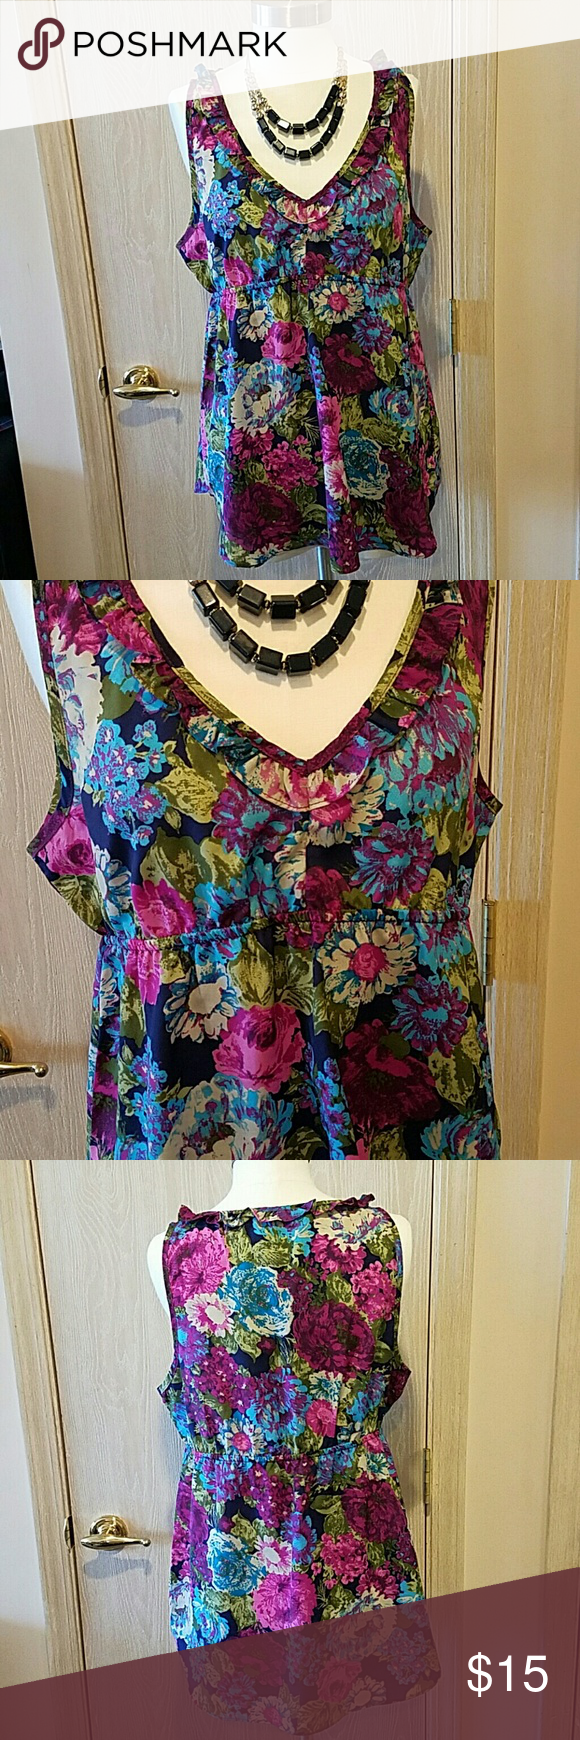 Floral tank Brightly colored floral tank top. Elastic around waist. Fits loosely.  Lightly worn but no snags or damage. Animal and smoke free home. Forever 21 Tops Tank Tops